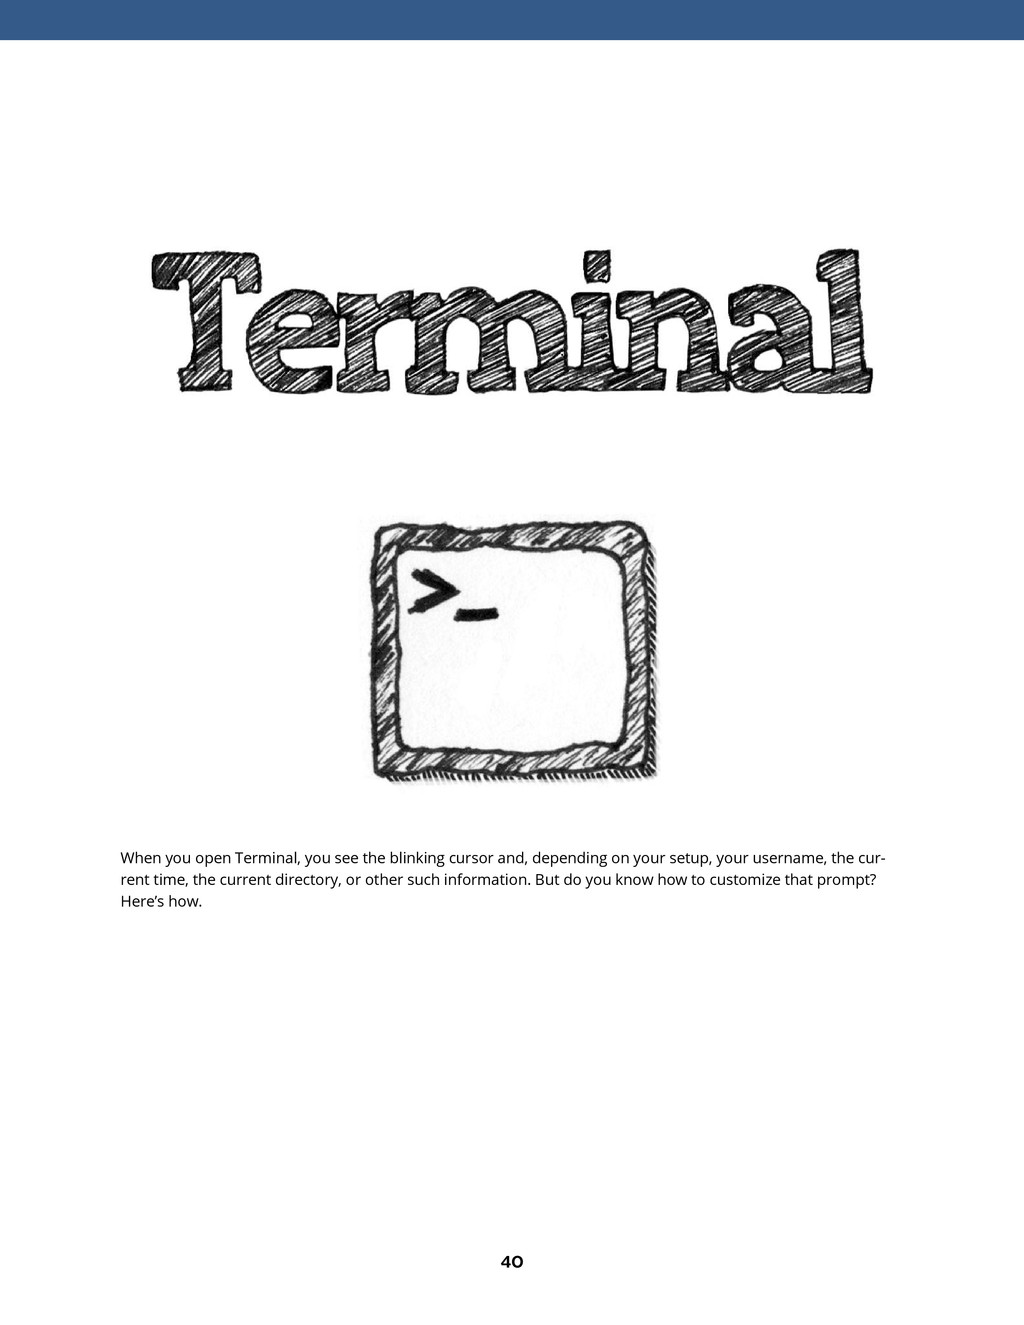 40 When you open Terminal, you see the blinking...